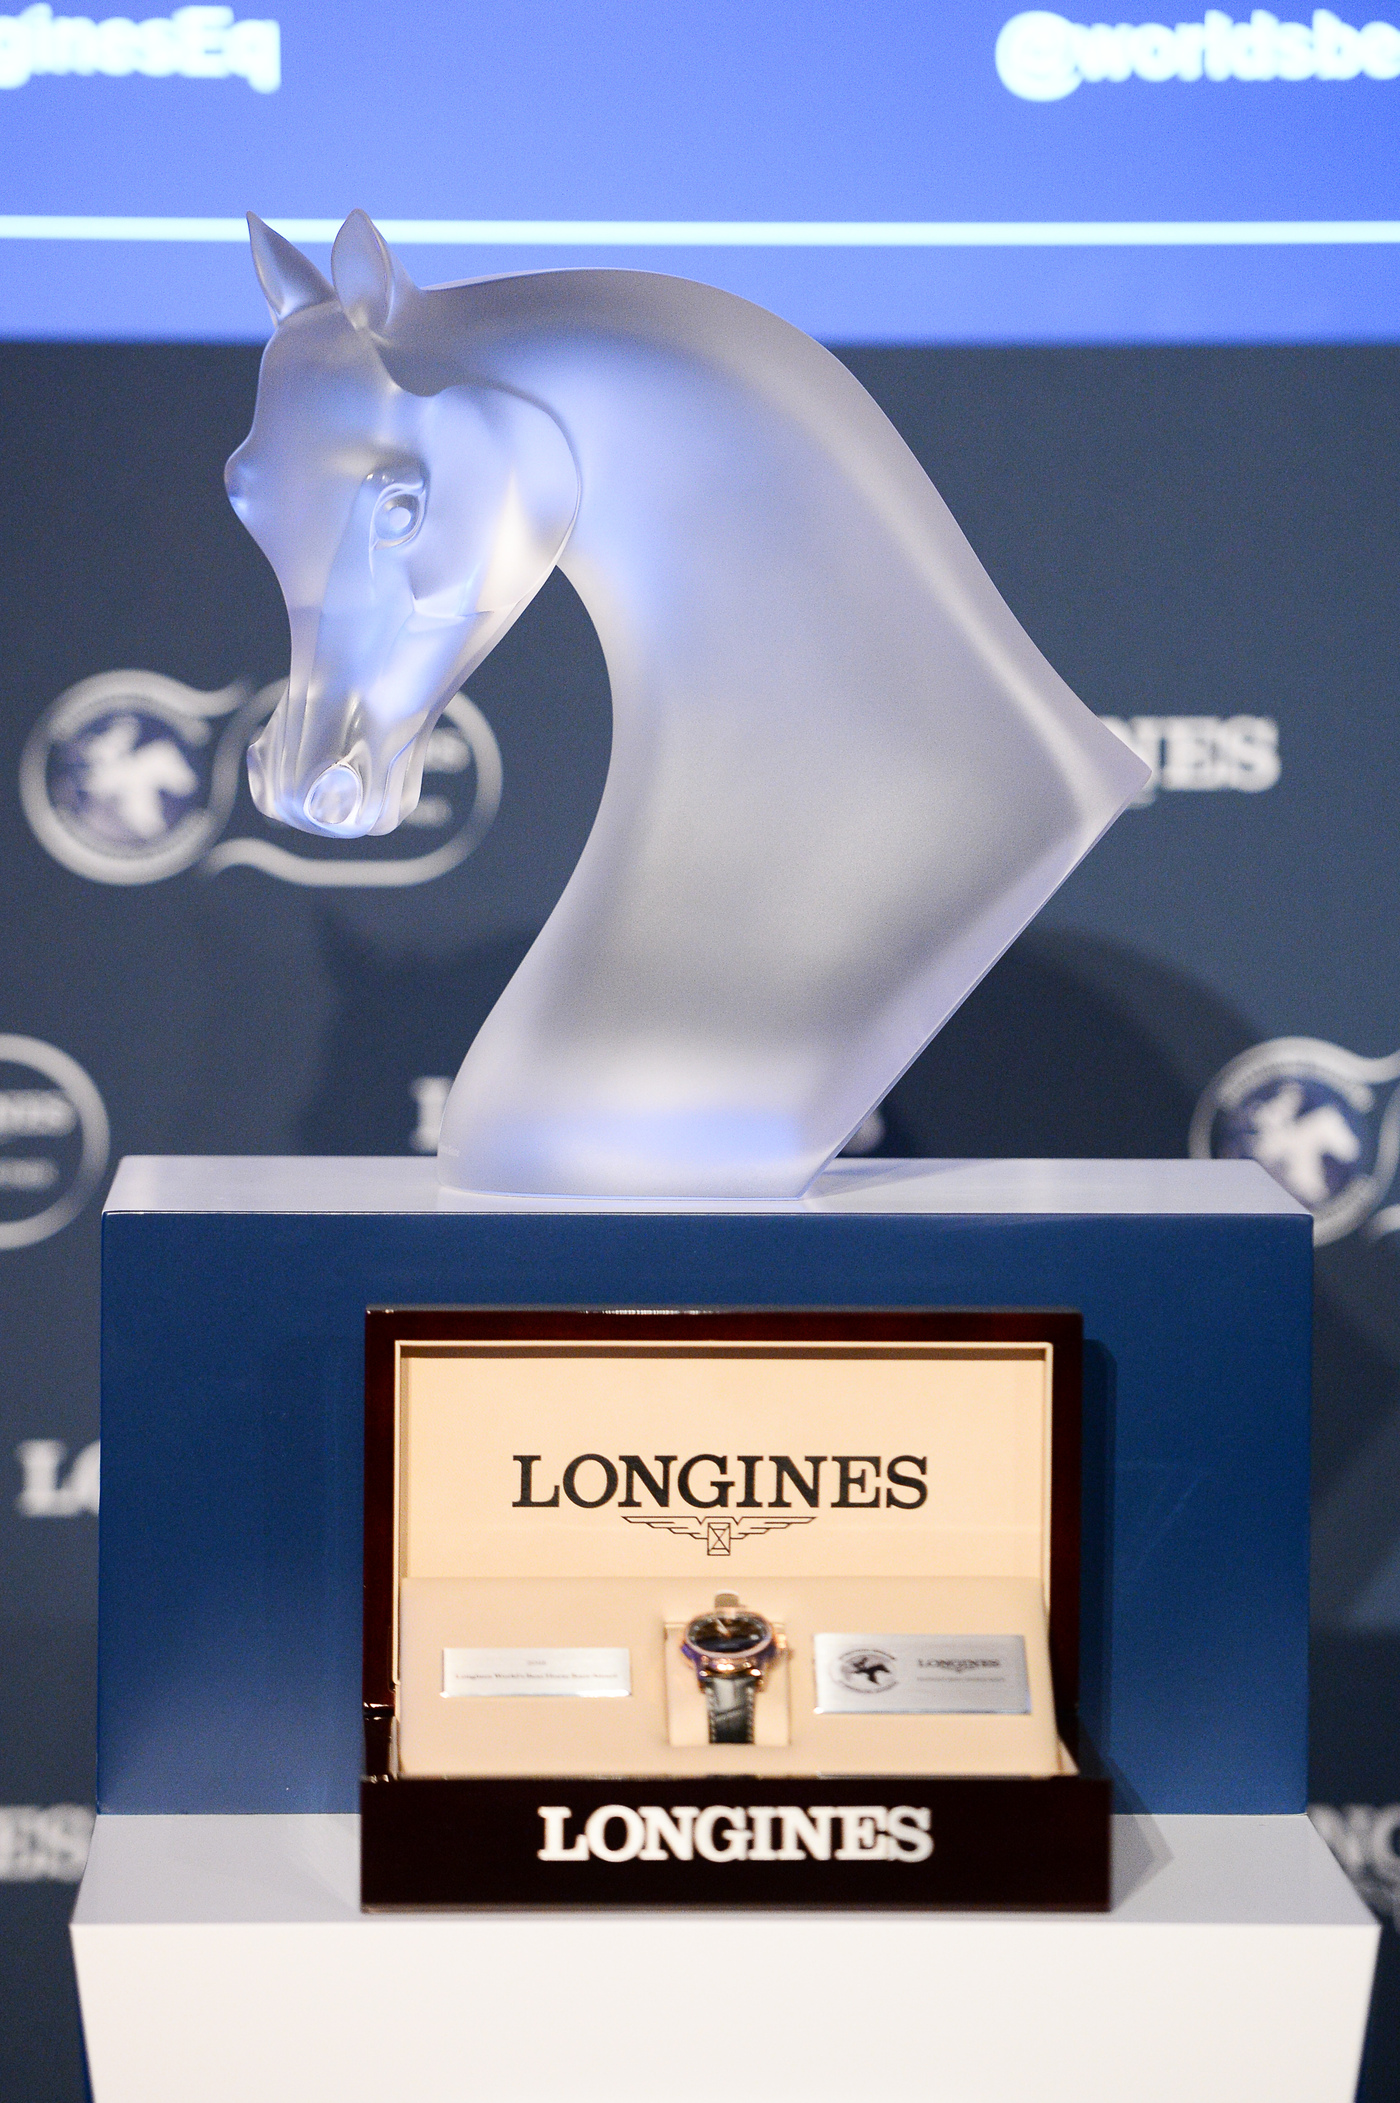 Longines Flat Racing Event: Longines World's Best Racehorse and Longines World's Best Horse Race Ceremony Returns to London 1